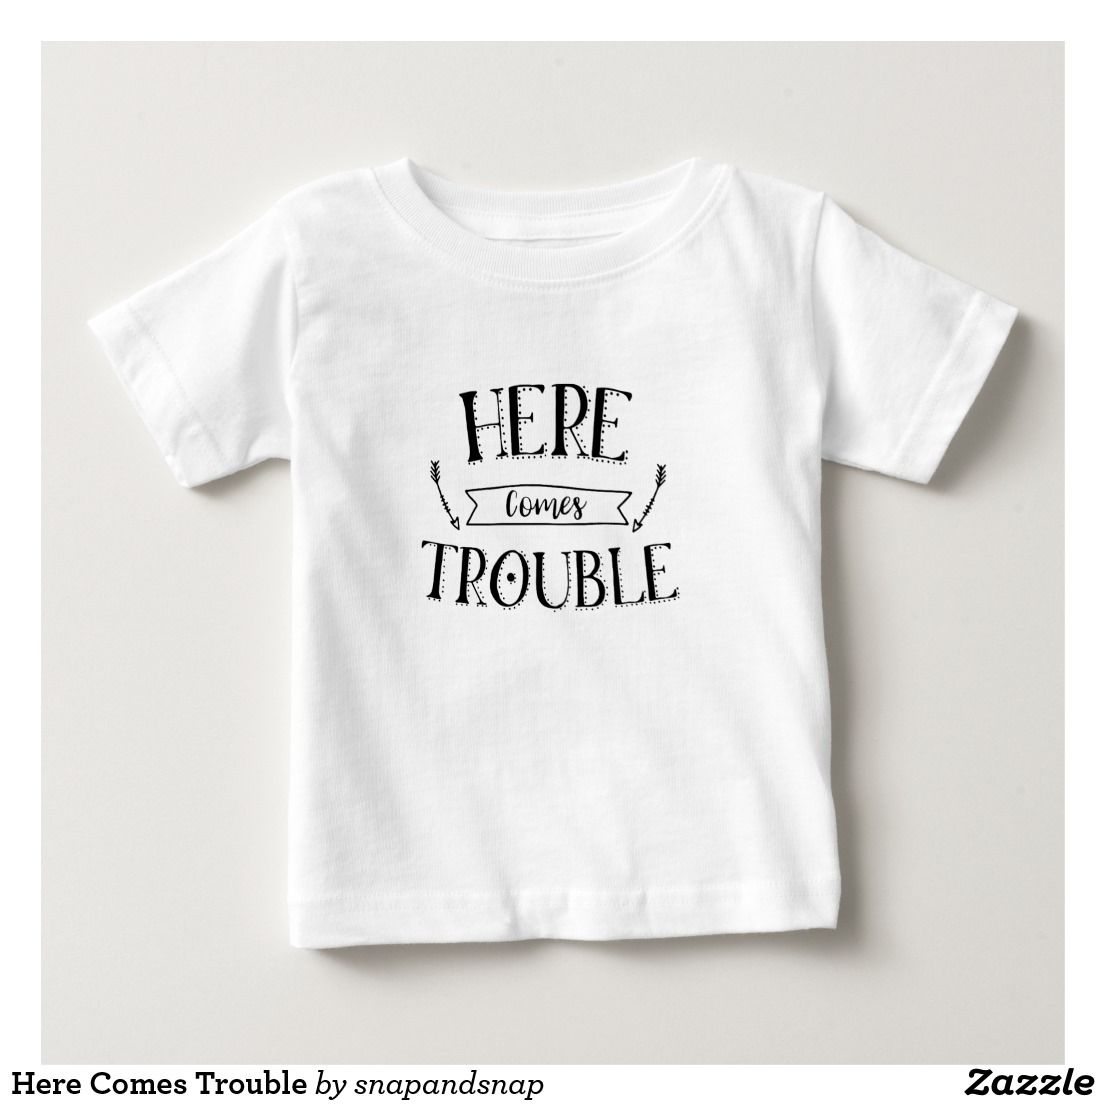 Zazzle t shirt design size - Here Comes Trouble Baby T Shirt Cute Slogan Tee Design Baby Fashion